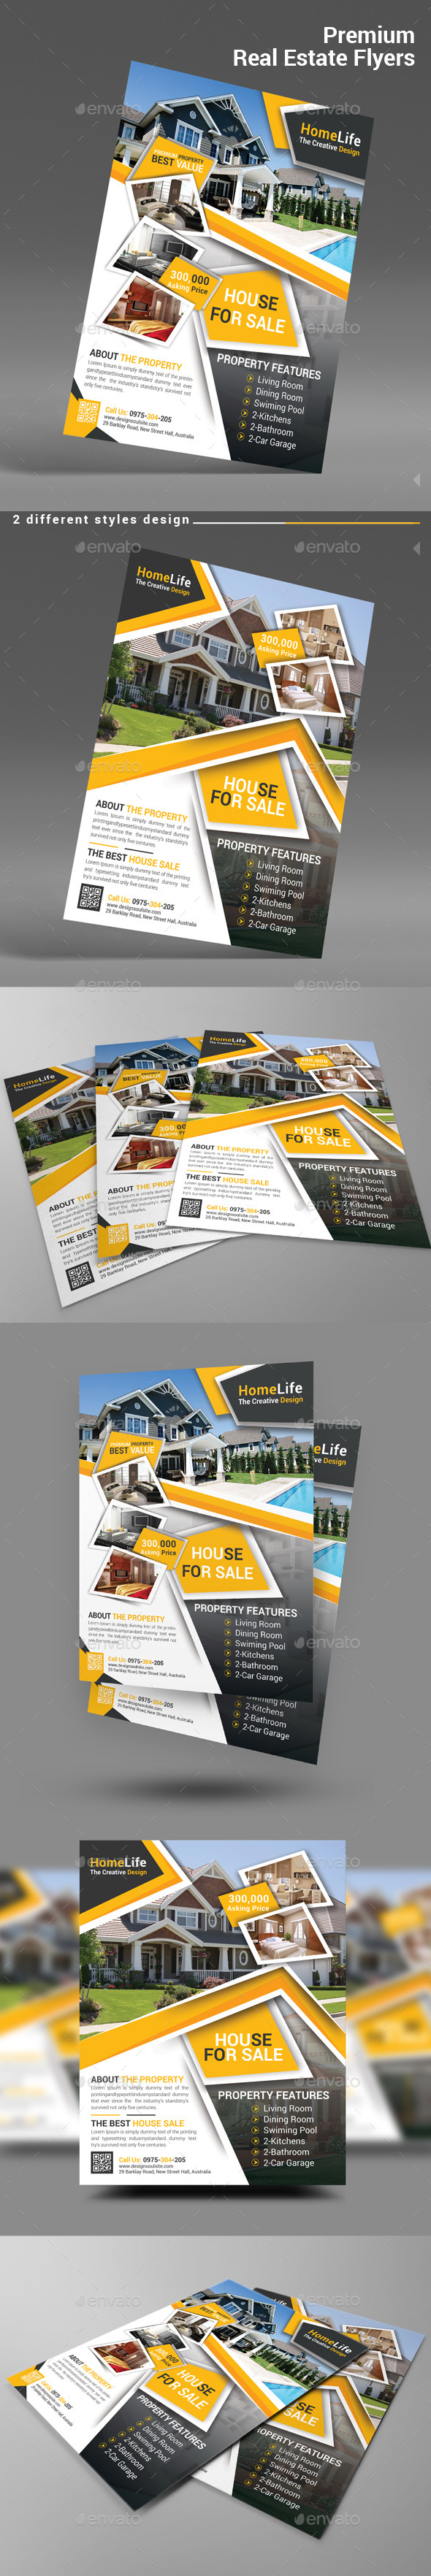 Premium Real Estate Flyers - Corporate Flyers